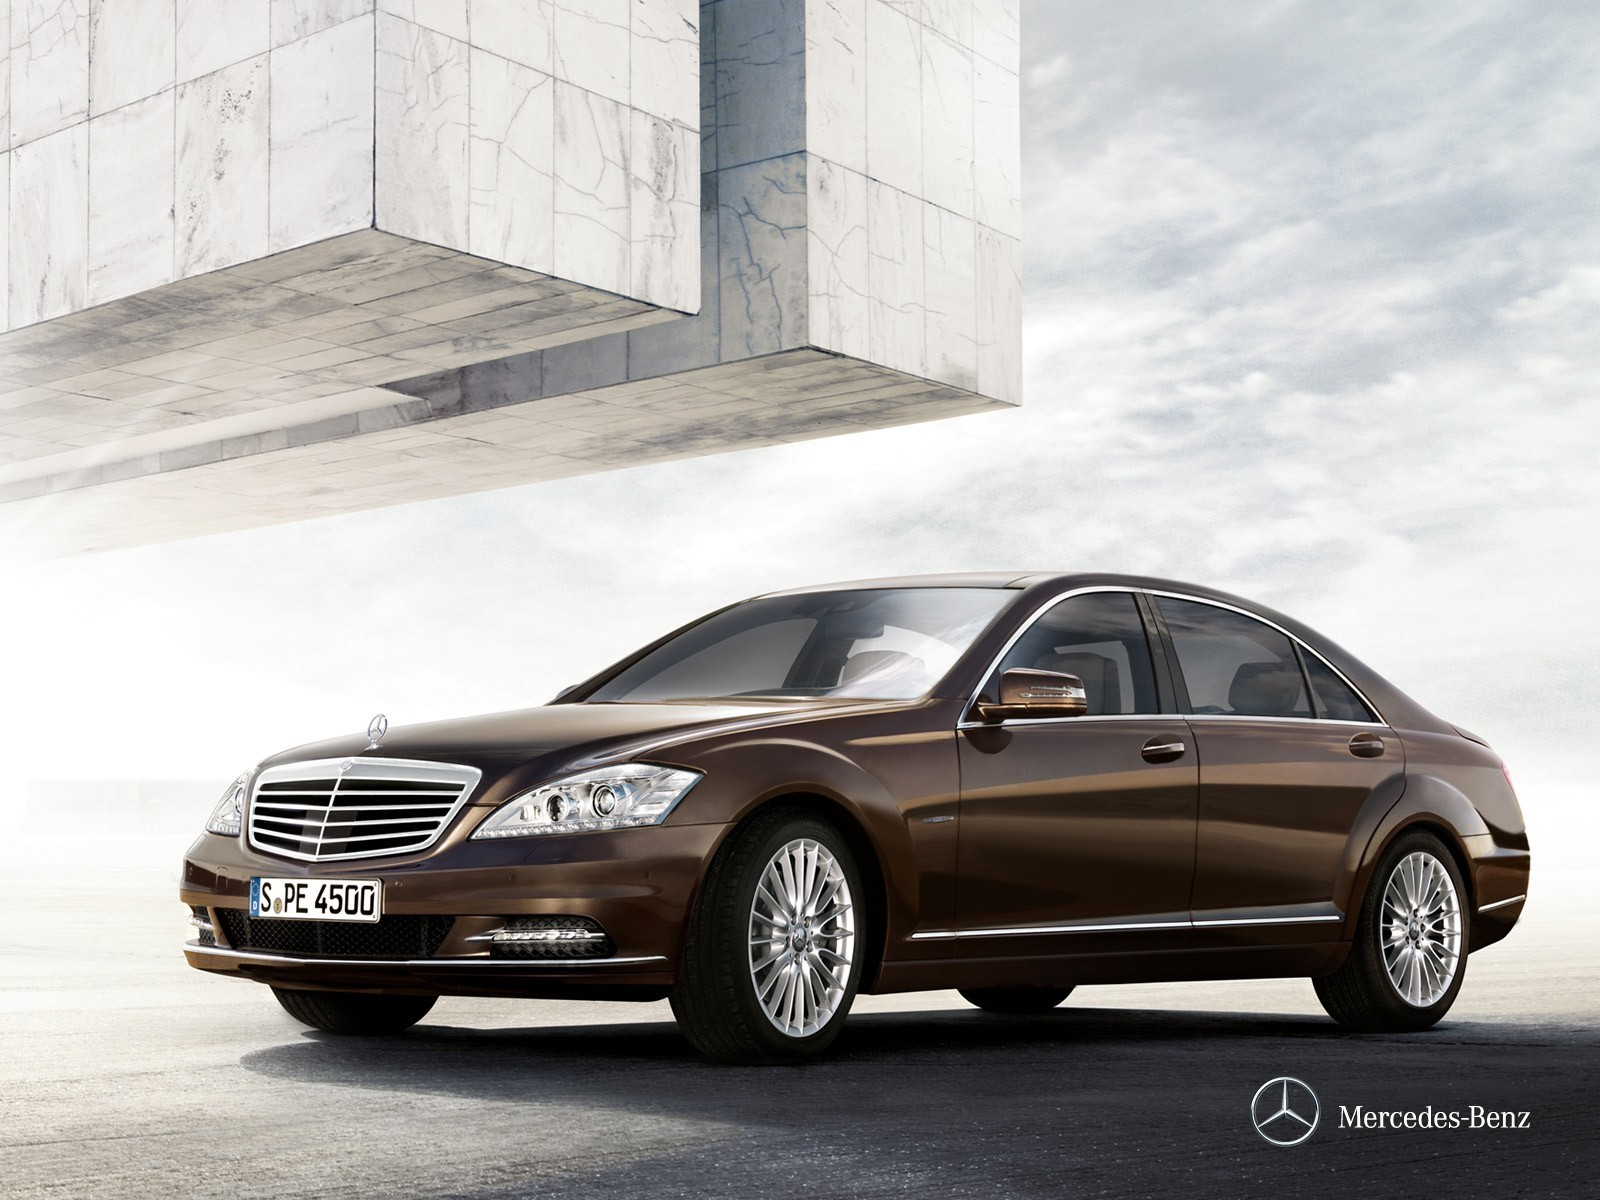 cars Mercedes-Benz S-Class Mercedes-Benz HD Wallpaper